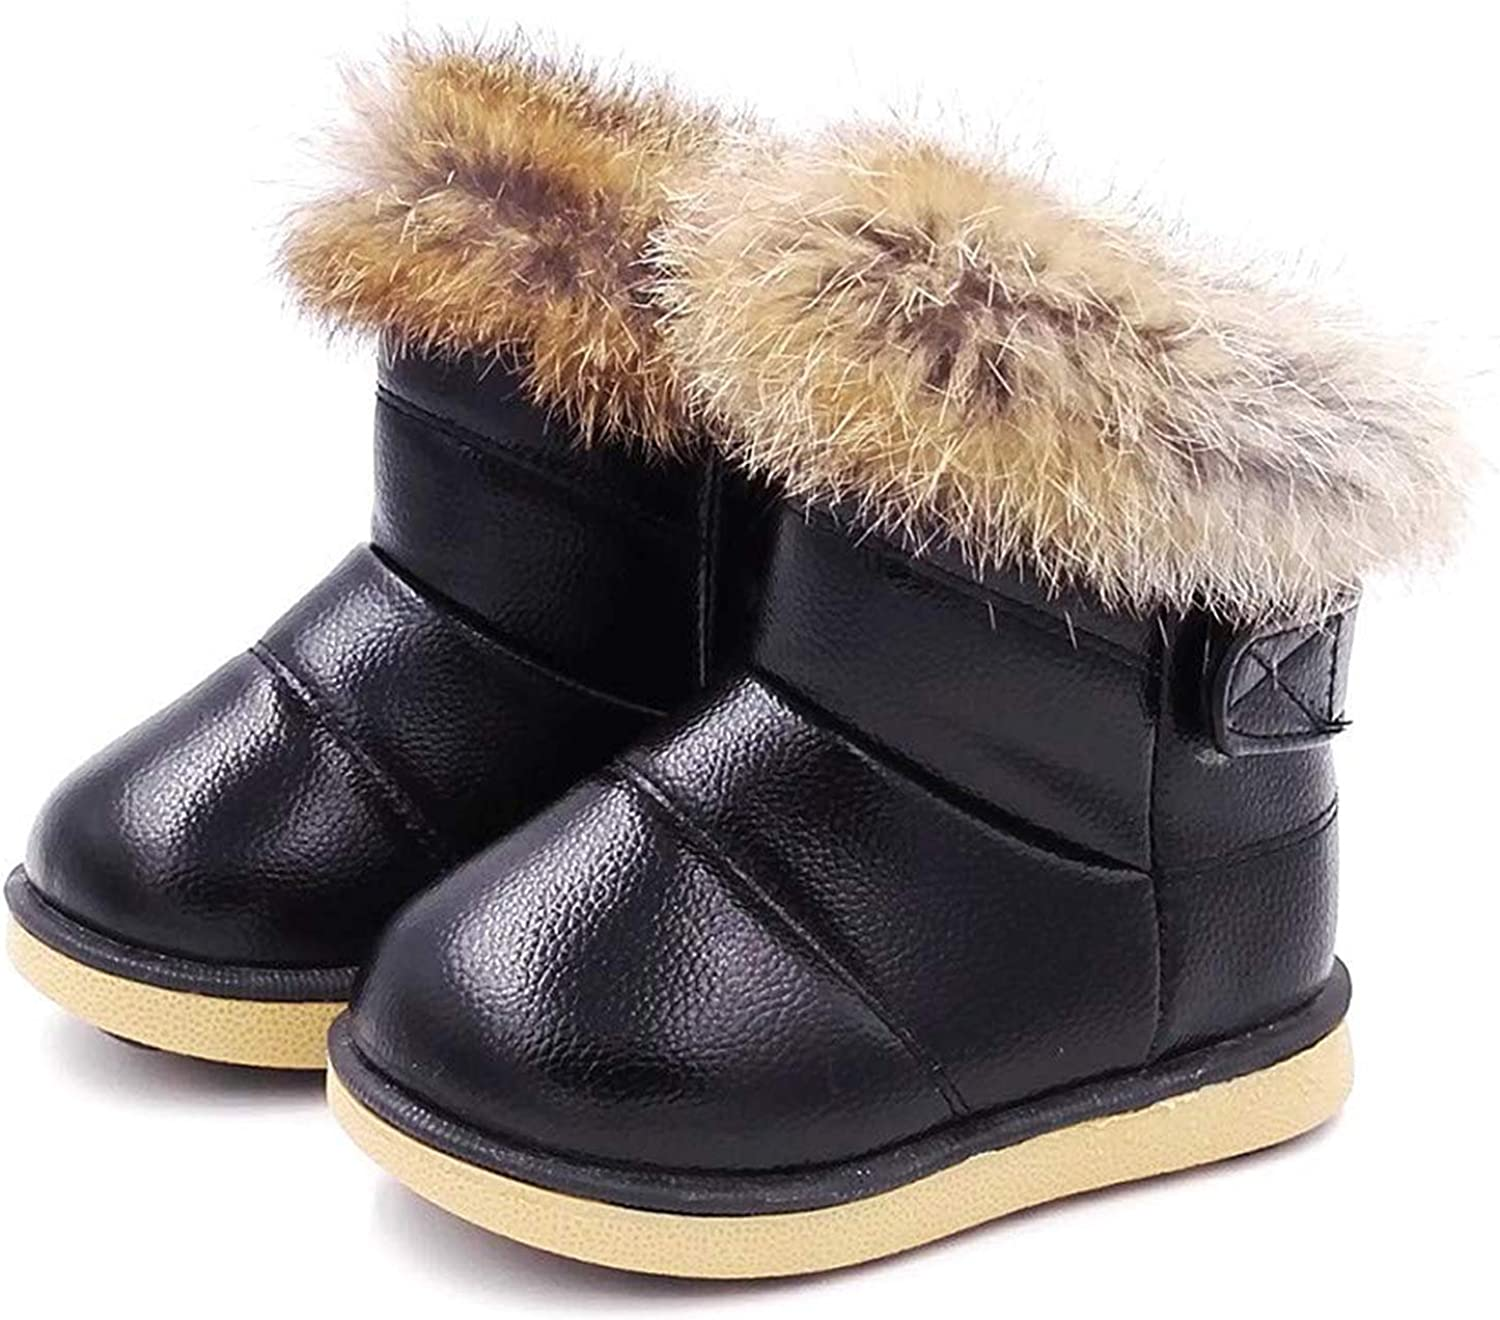 girl boots for winter